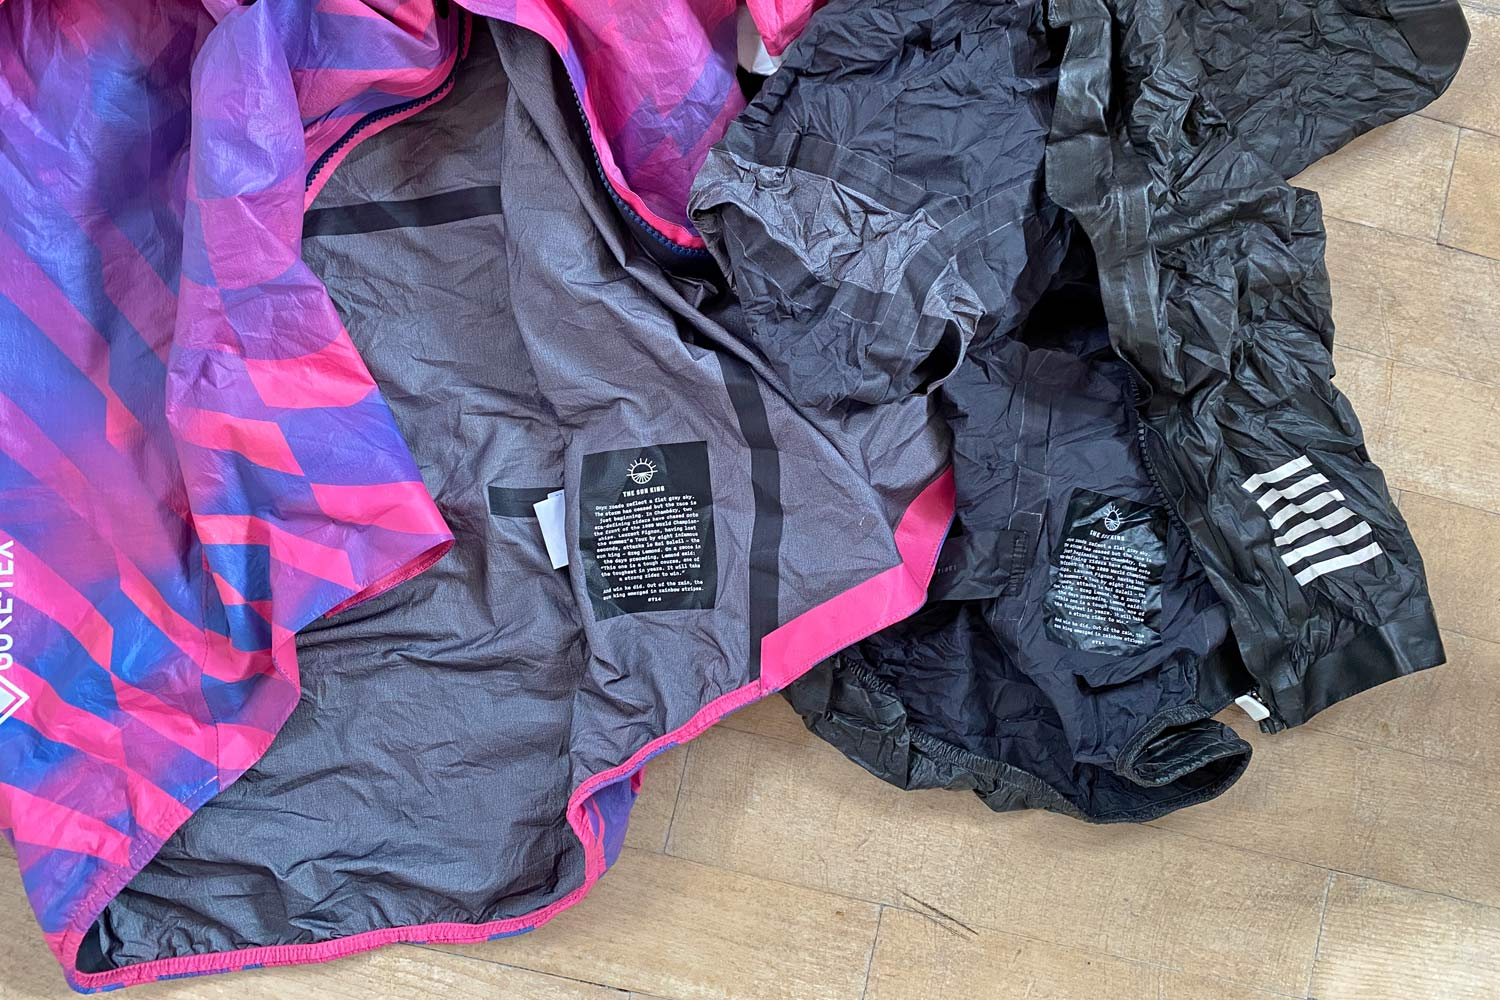 Exclusive Review: Rapha Pro Team Lightweight Gore-Tex Jacket printed in pink Technicolor, extra full color Shakedry visibility,pink vs. black